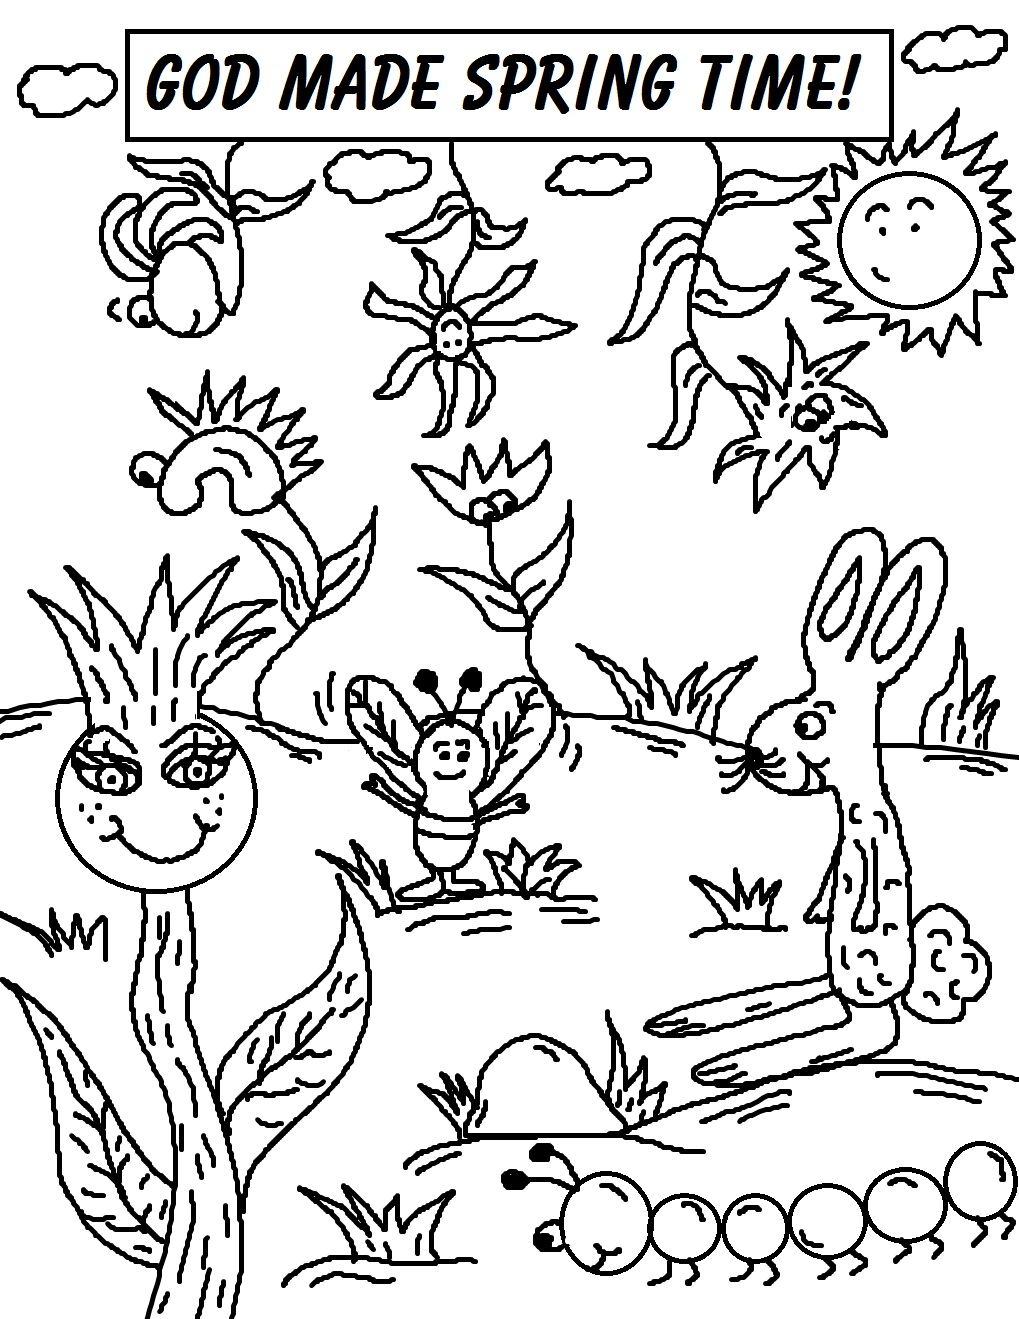 Printable coloring pages of spring - Spring Coloring Pages For 2nd Grade Printable